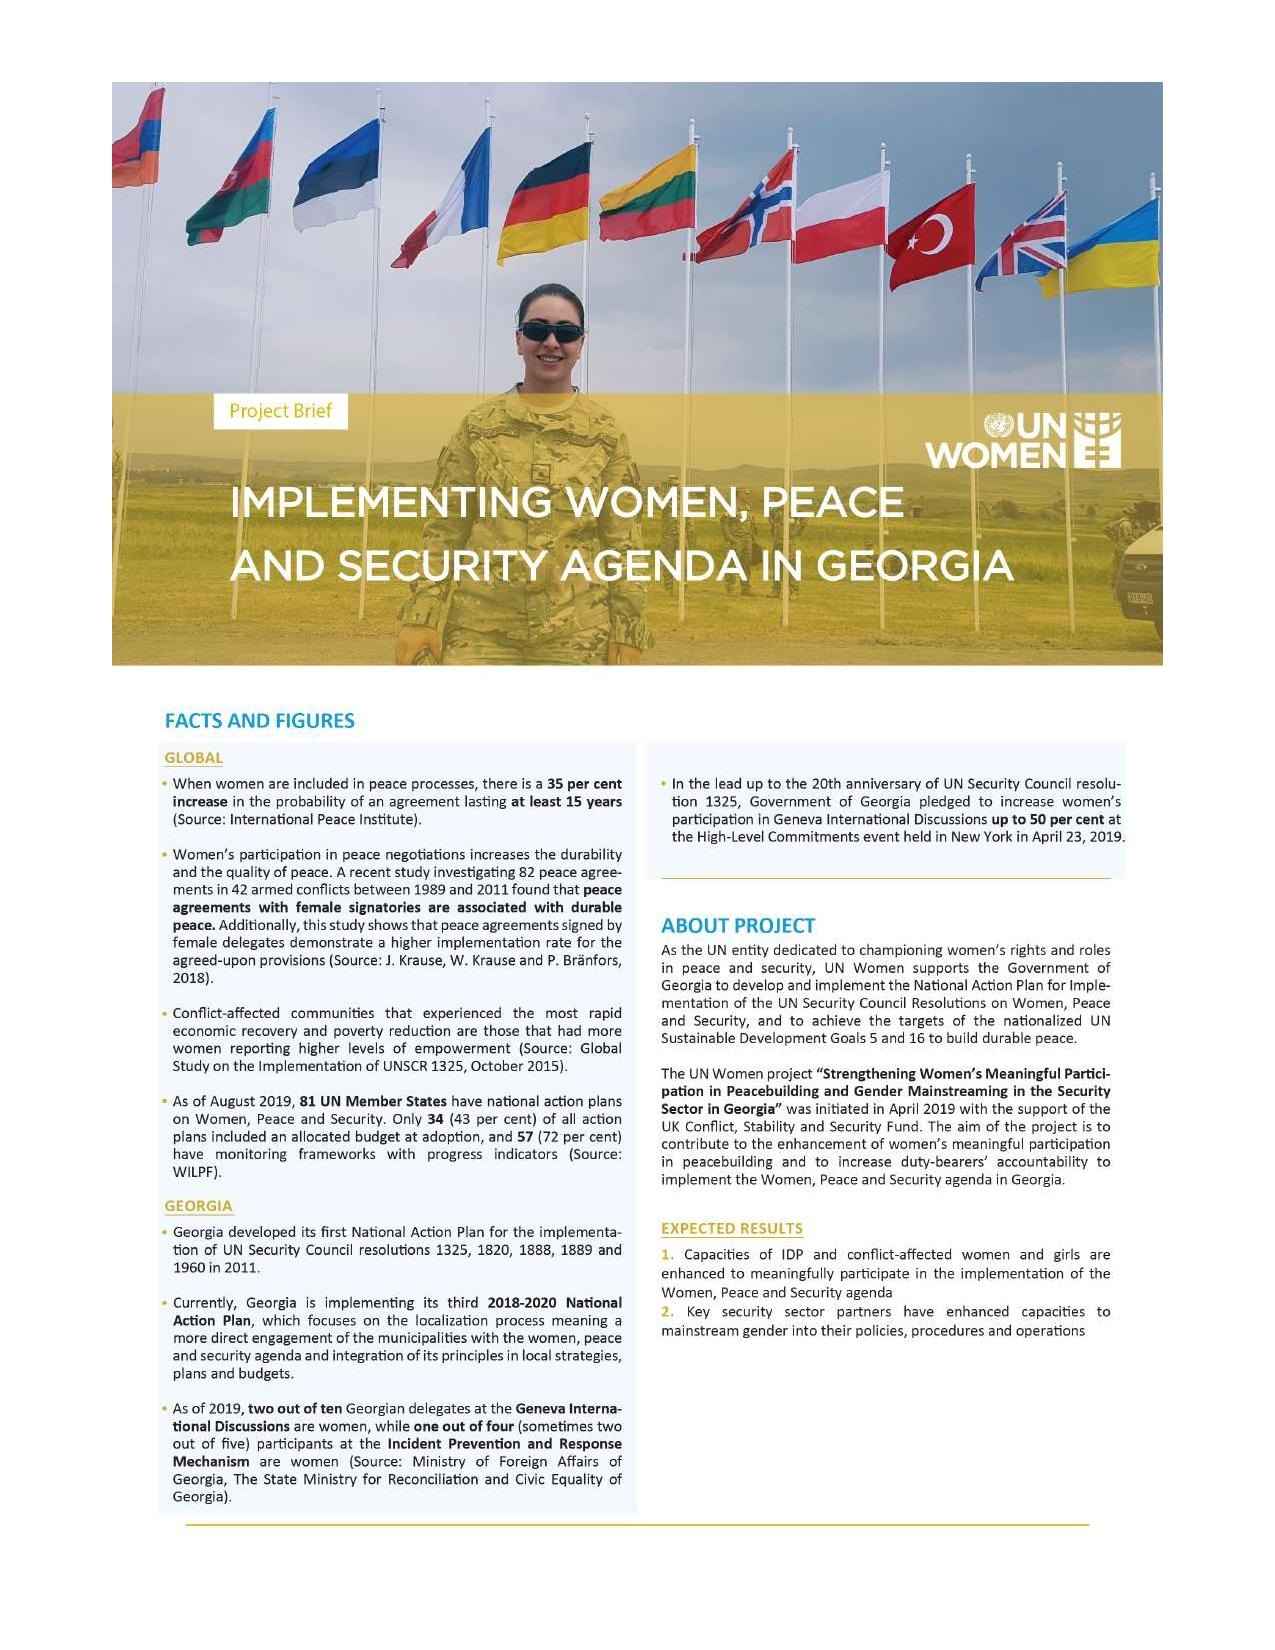 "short description of the UN Women project ""Strengthening Women's Meaningful Participation in Peacebuilding and Gender Mainstreaming in the Security Sector in Georgia"""